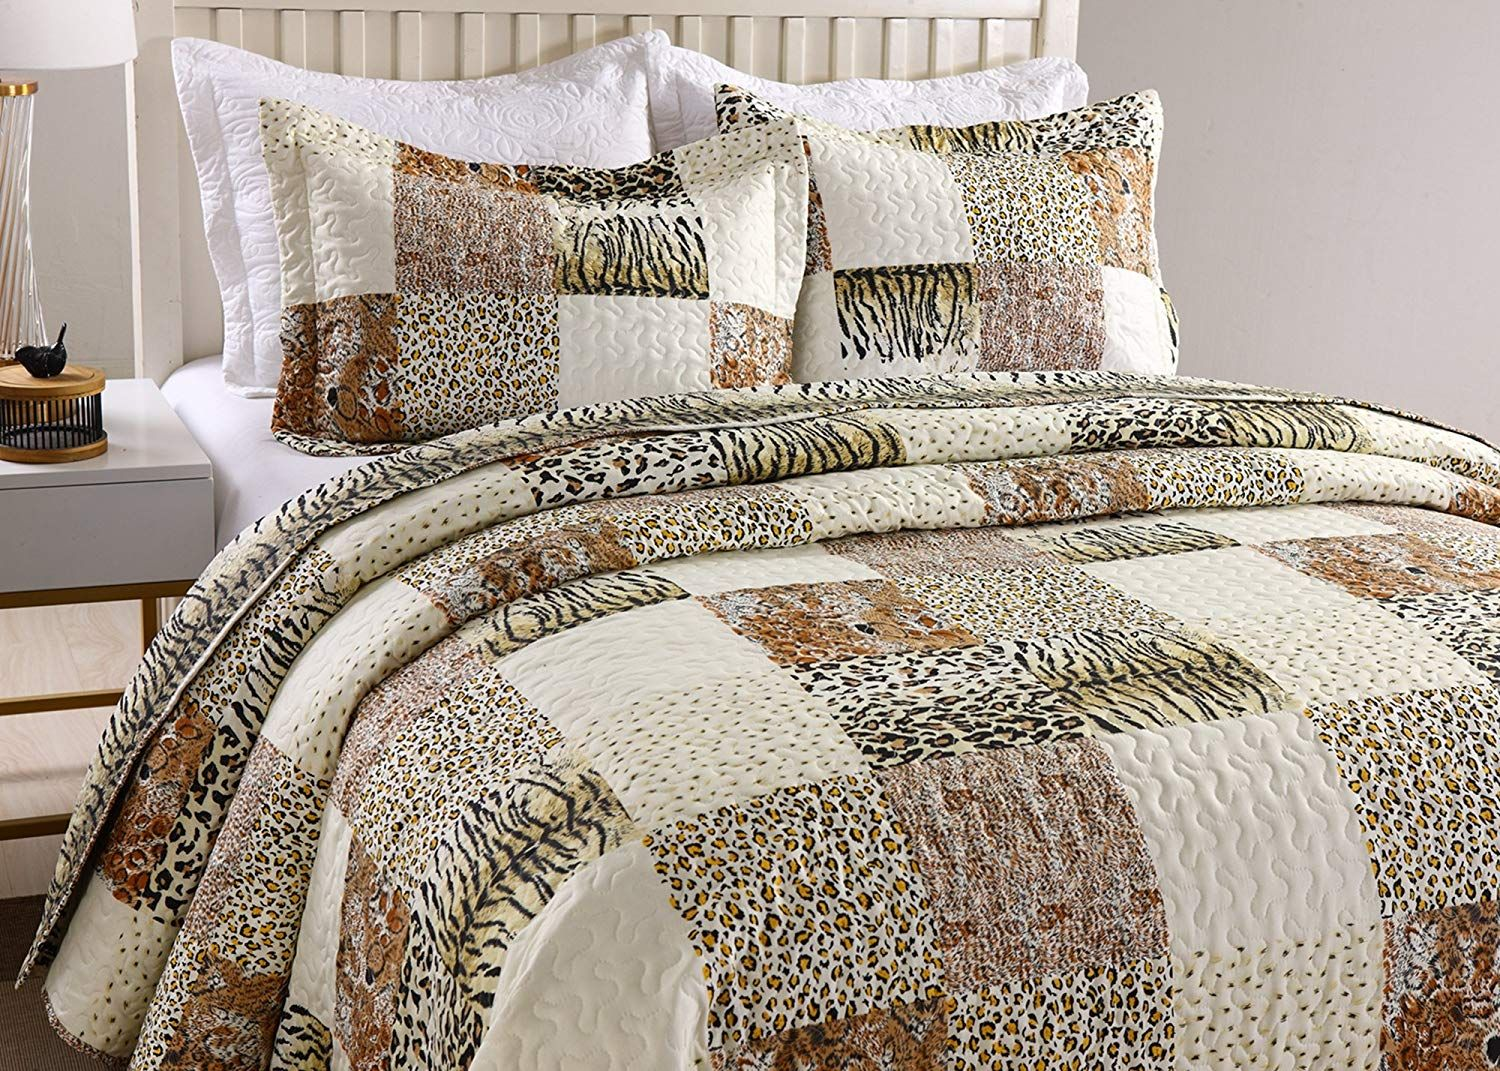 Marcielo 3 Piece Quilted Bedspread Leopard Print Quilt Quilt Set Bedding Throw Blanket Coverlet Quilt Sets Bedding Coverlet Bedroom Print Bedding